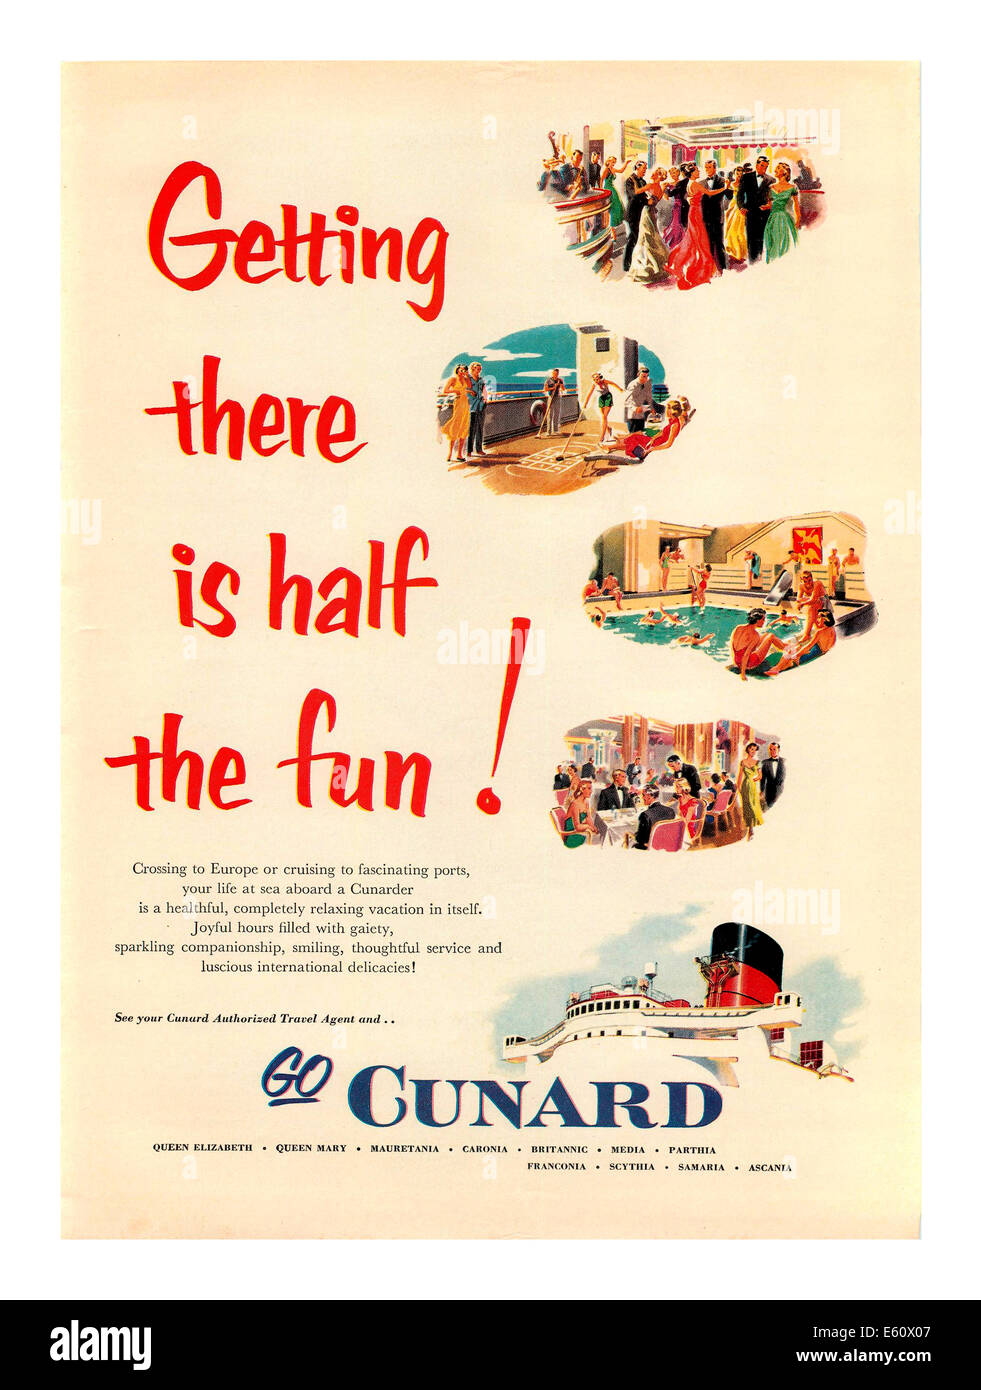 1950's vintage cruise ship Cunard line poster ' Getting there is half the fun' - Stock Image